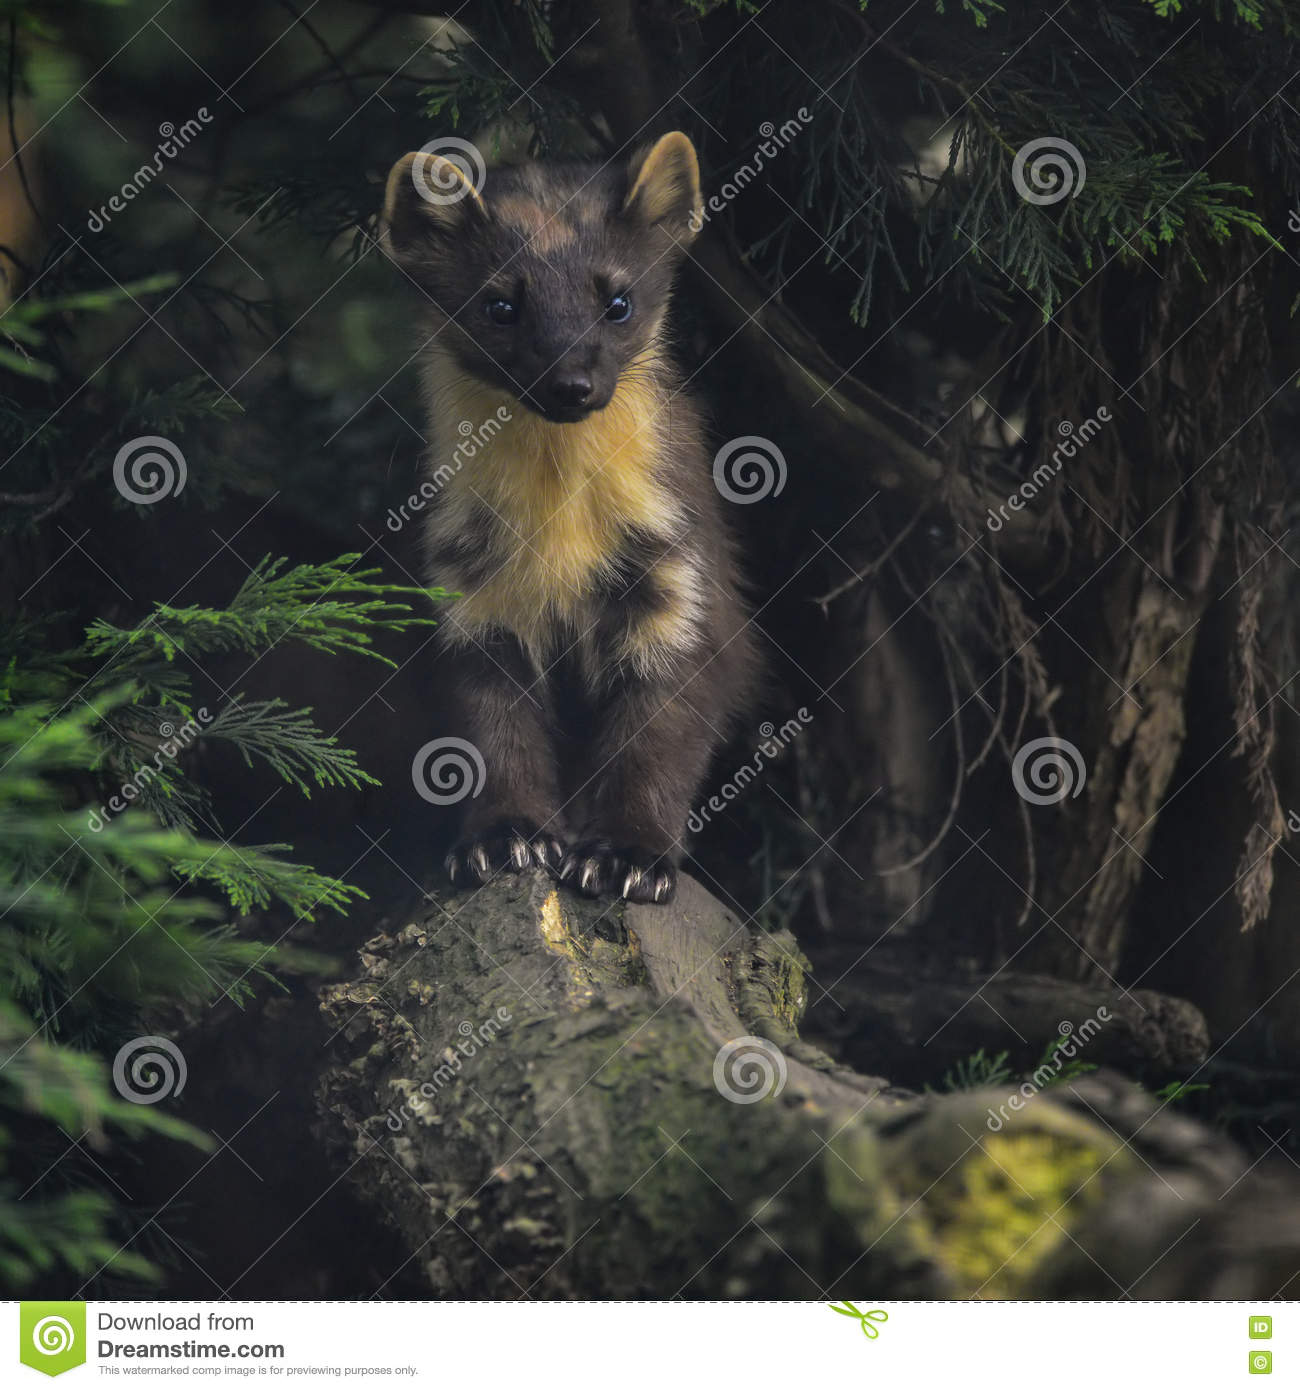 Download Stunning Pine Martin Martes Martes On Branch In Tree Stock Photo - Image of mammal, nature: 73485556